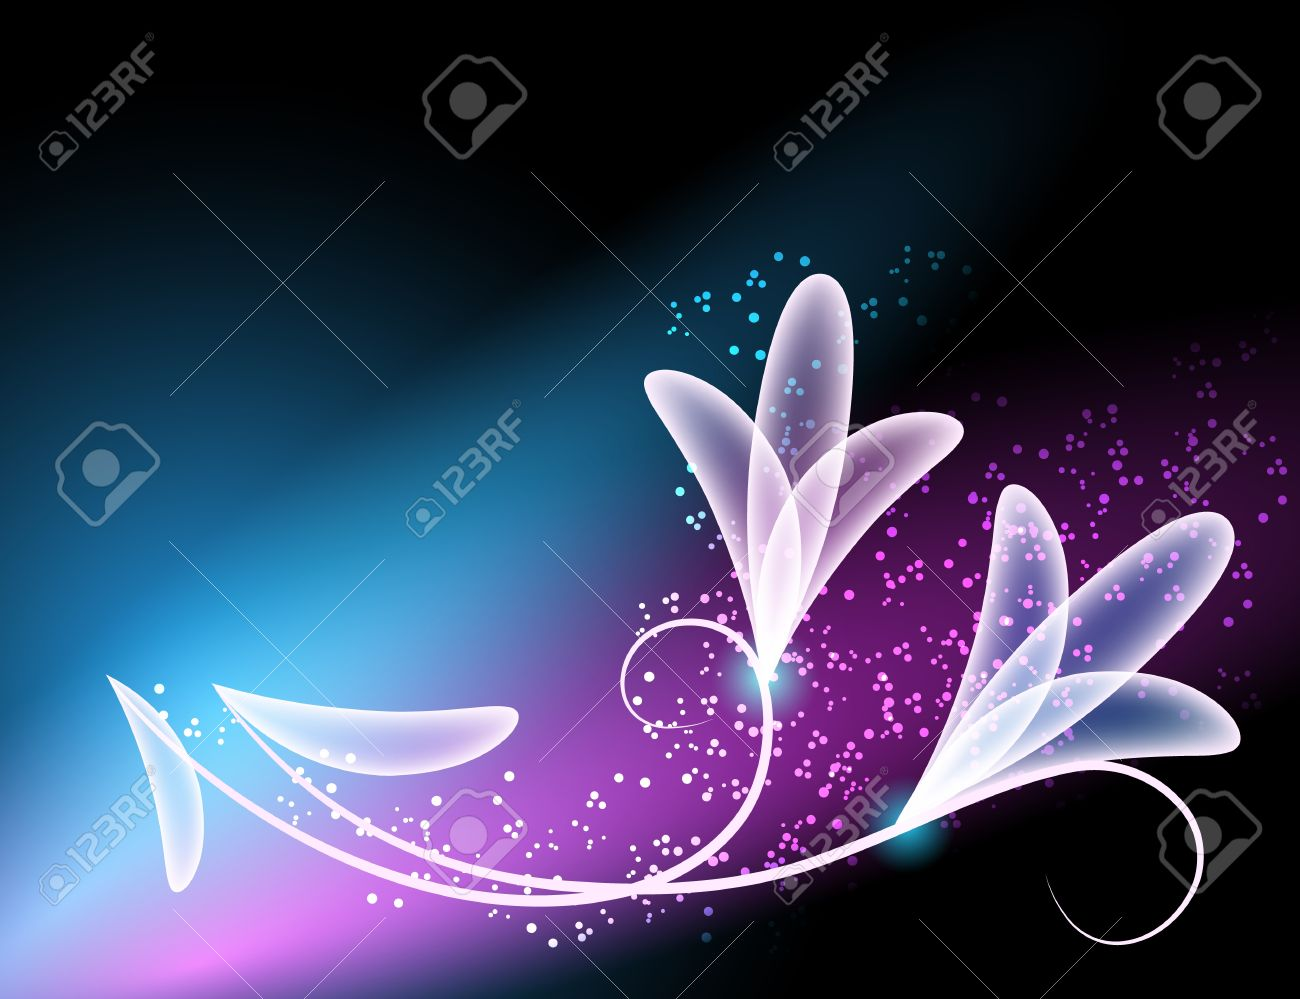 Glowing background with transparent flowers and stars - 12940349